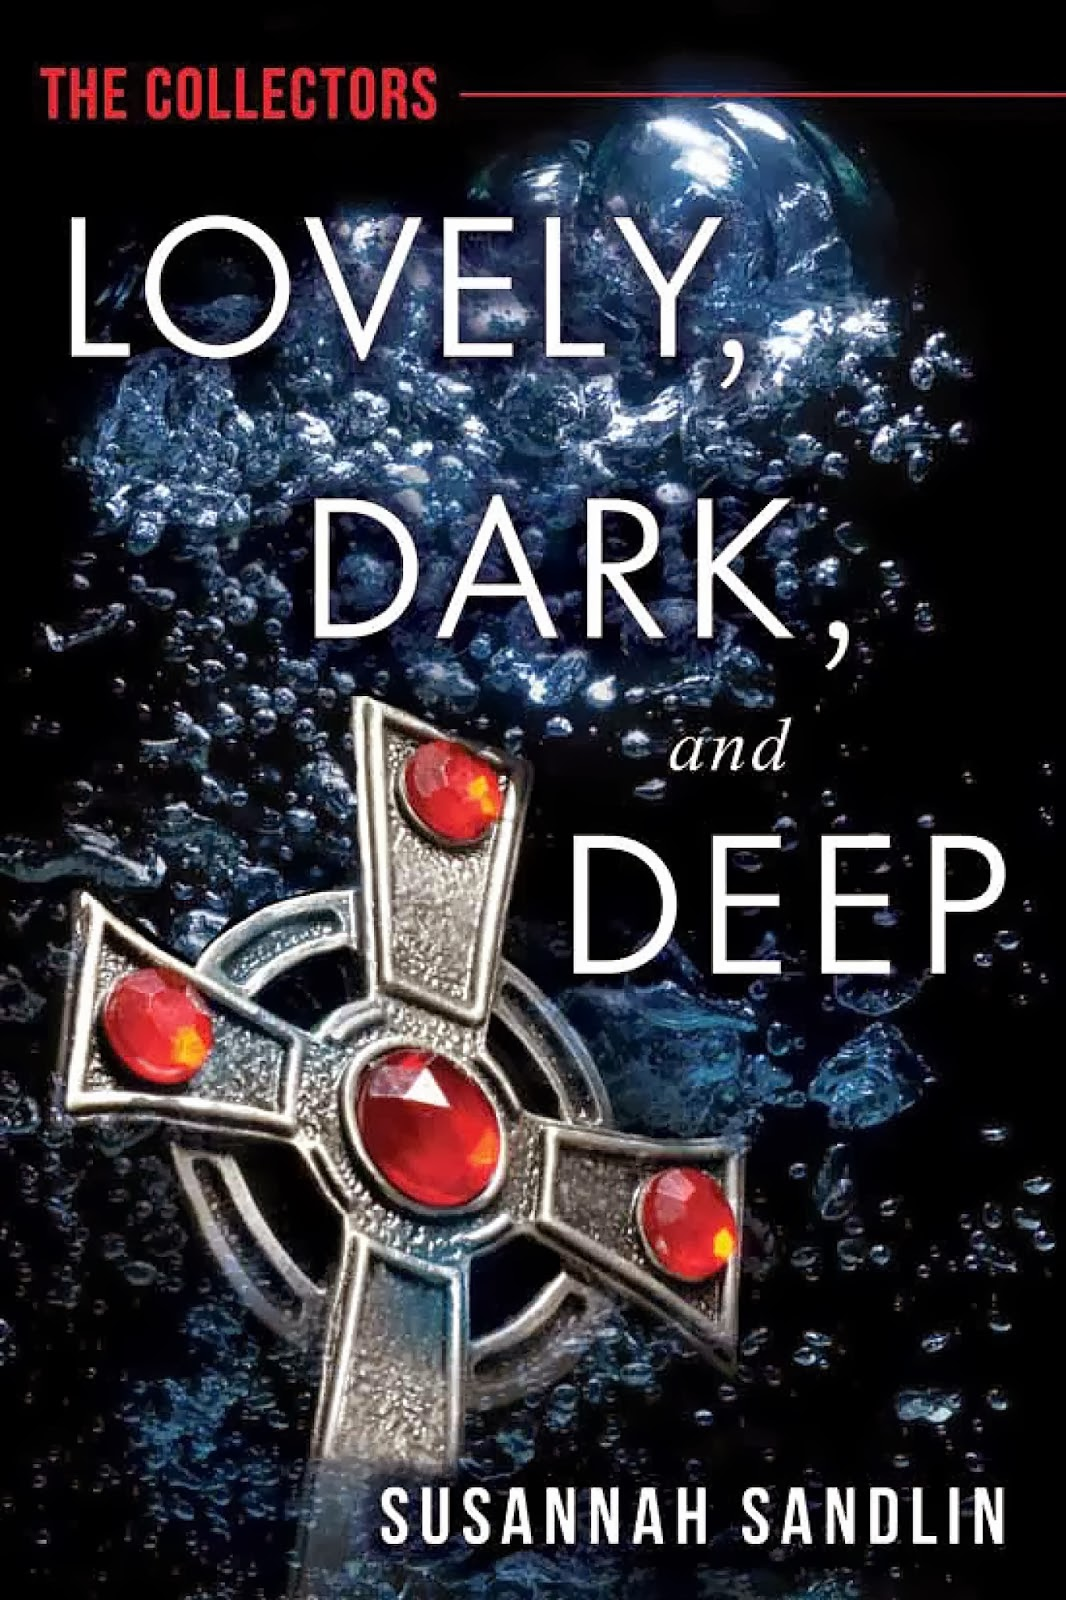 Coming Dec. 30: LOVELY, DARK, AND DEEP